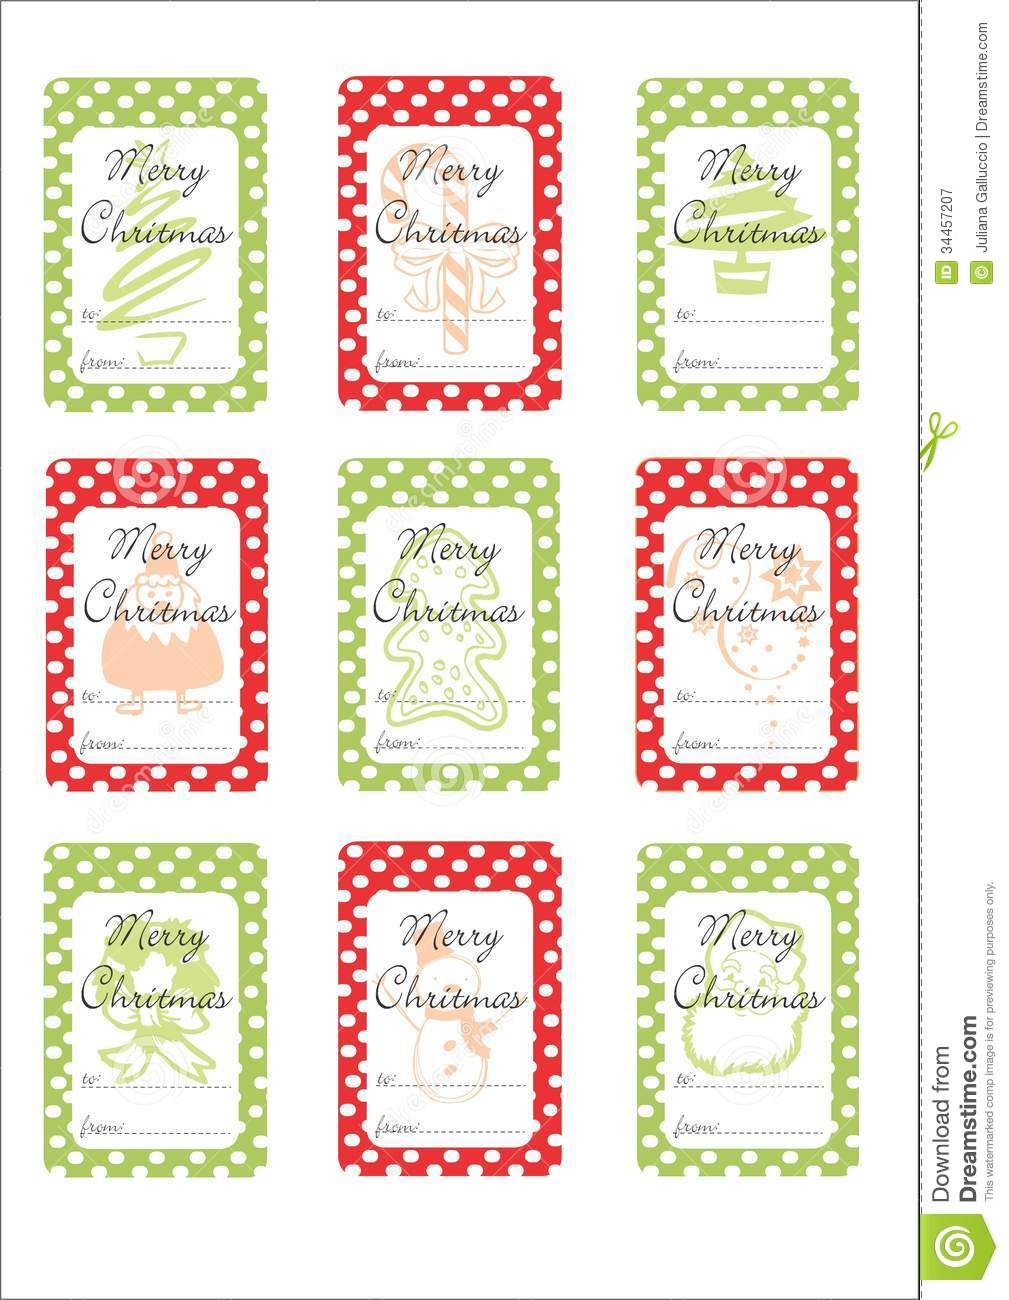 photograph regarding Printable Santa Gift Tags known as Chritmas Present Tags inventory instance. Example of